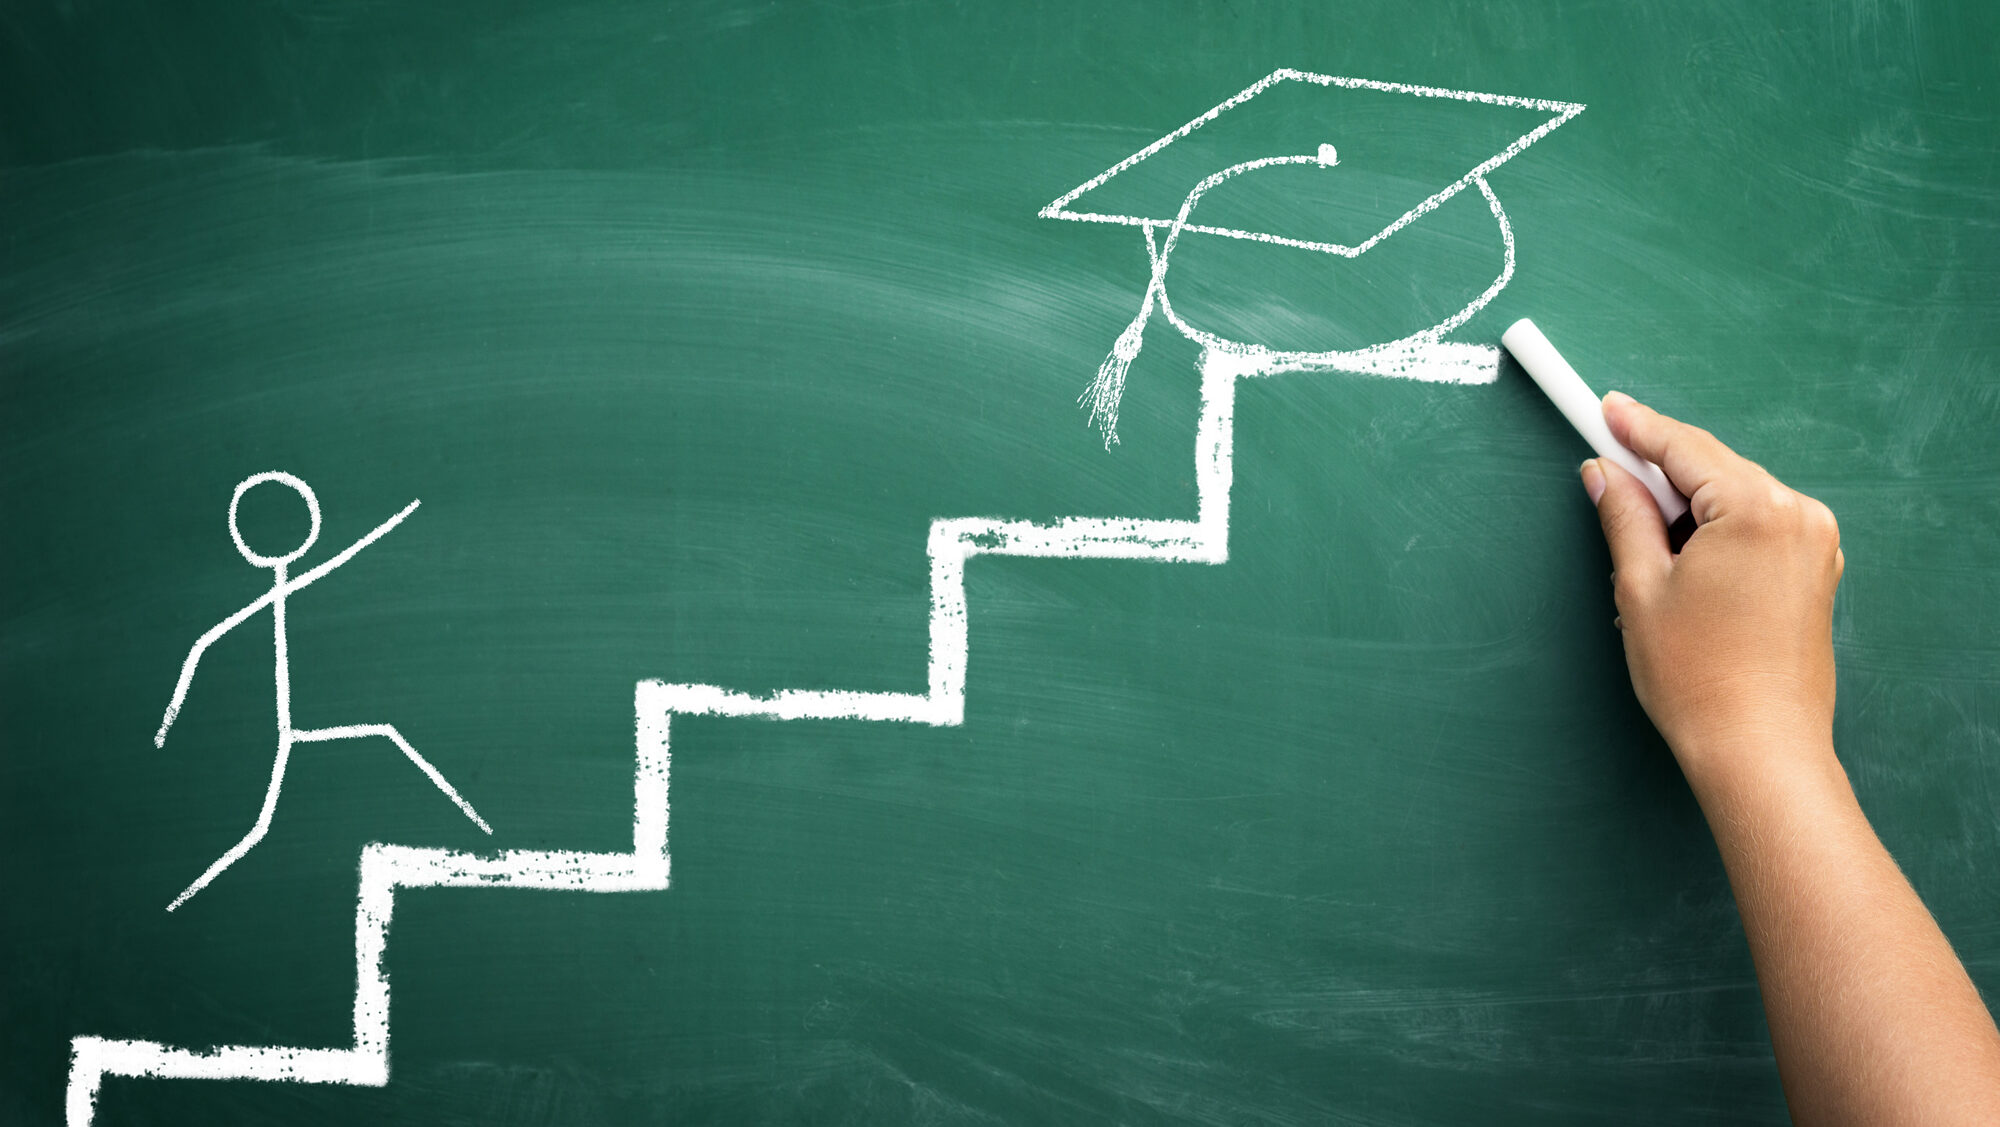 Green chalk board with stick figure climbing stairs to graduation cap.